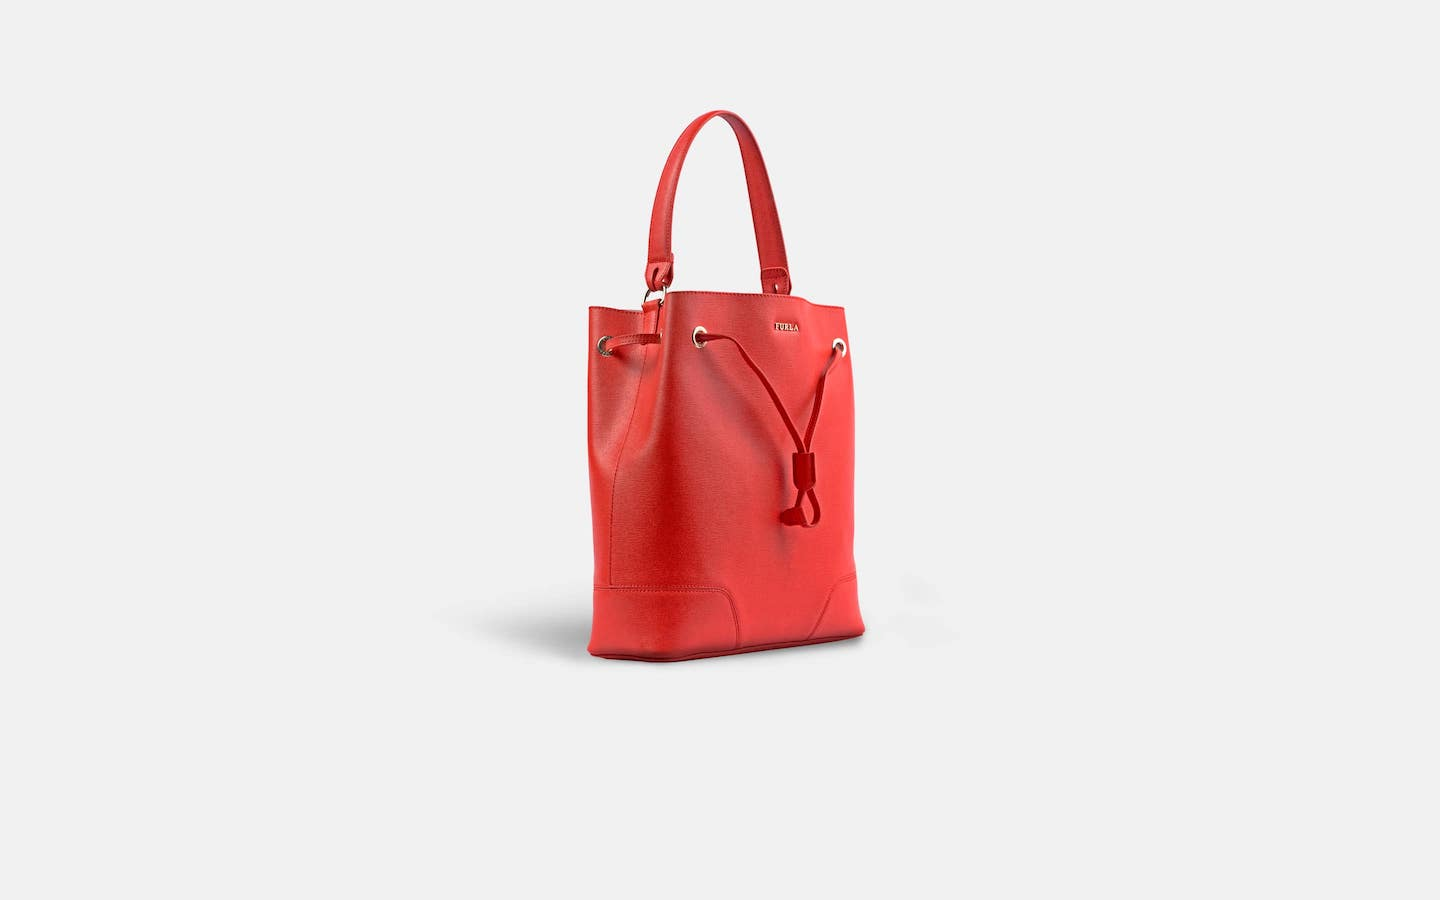 furla-stacy-red-angled-min-min